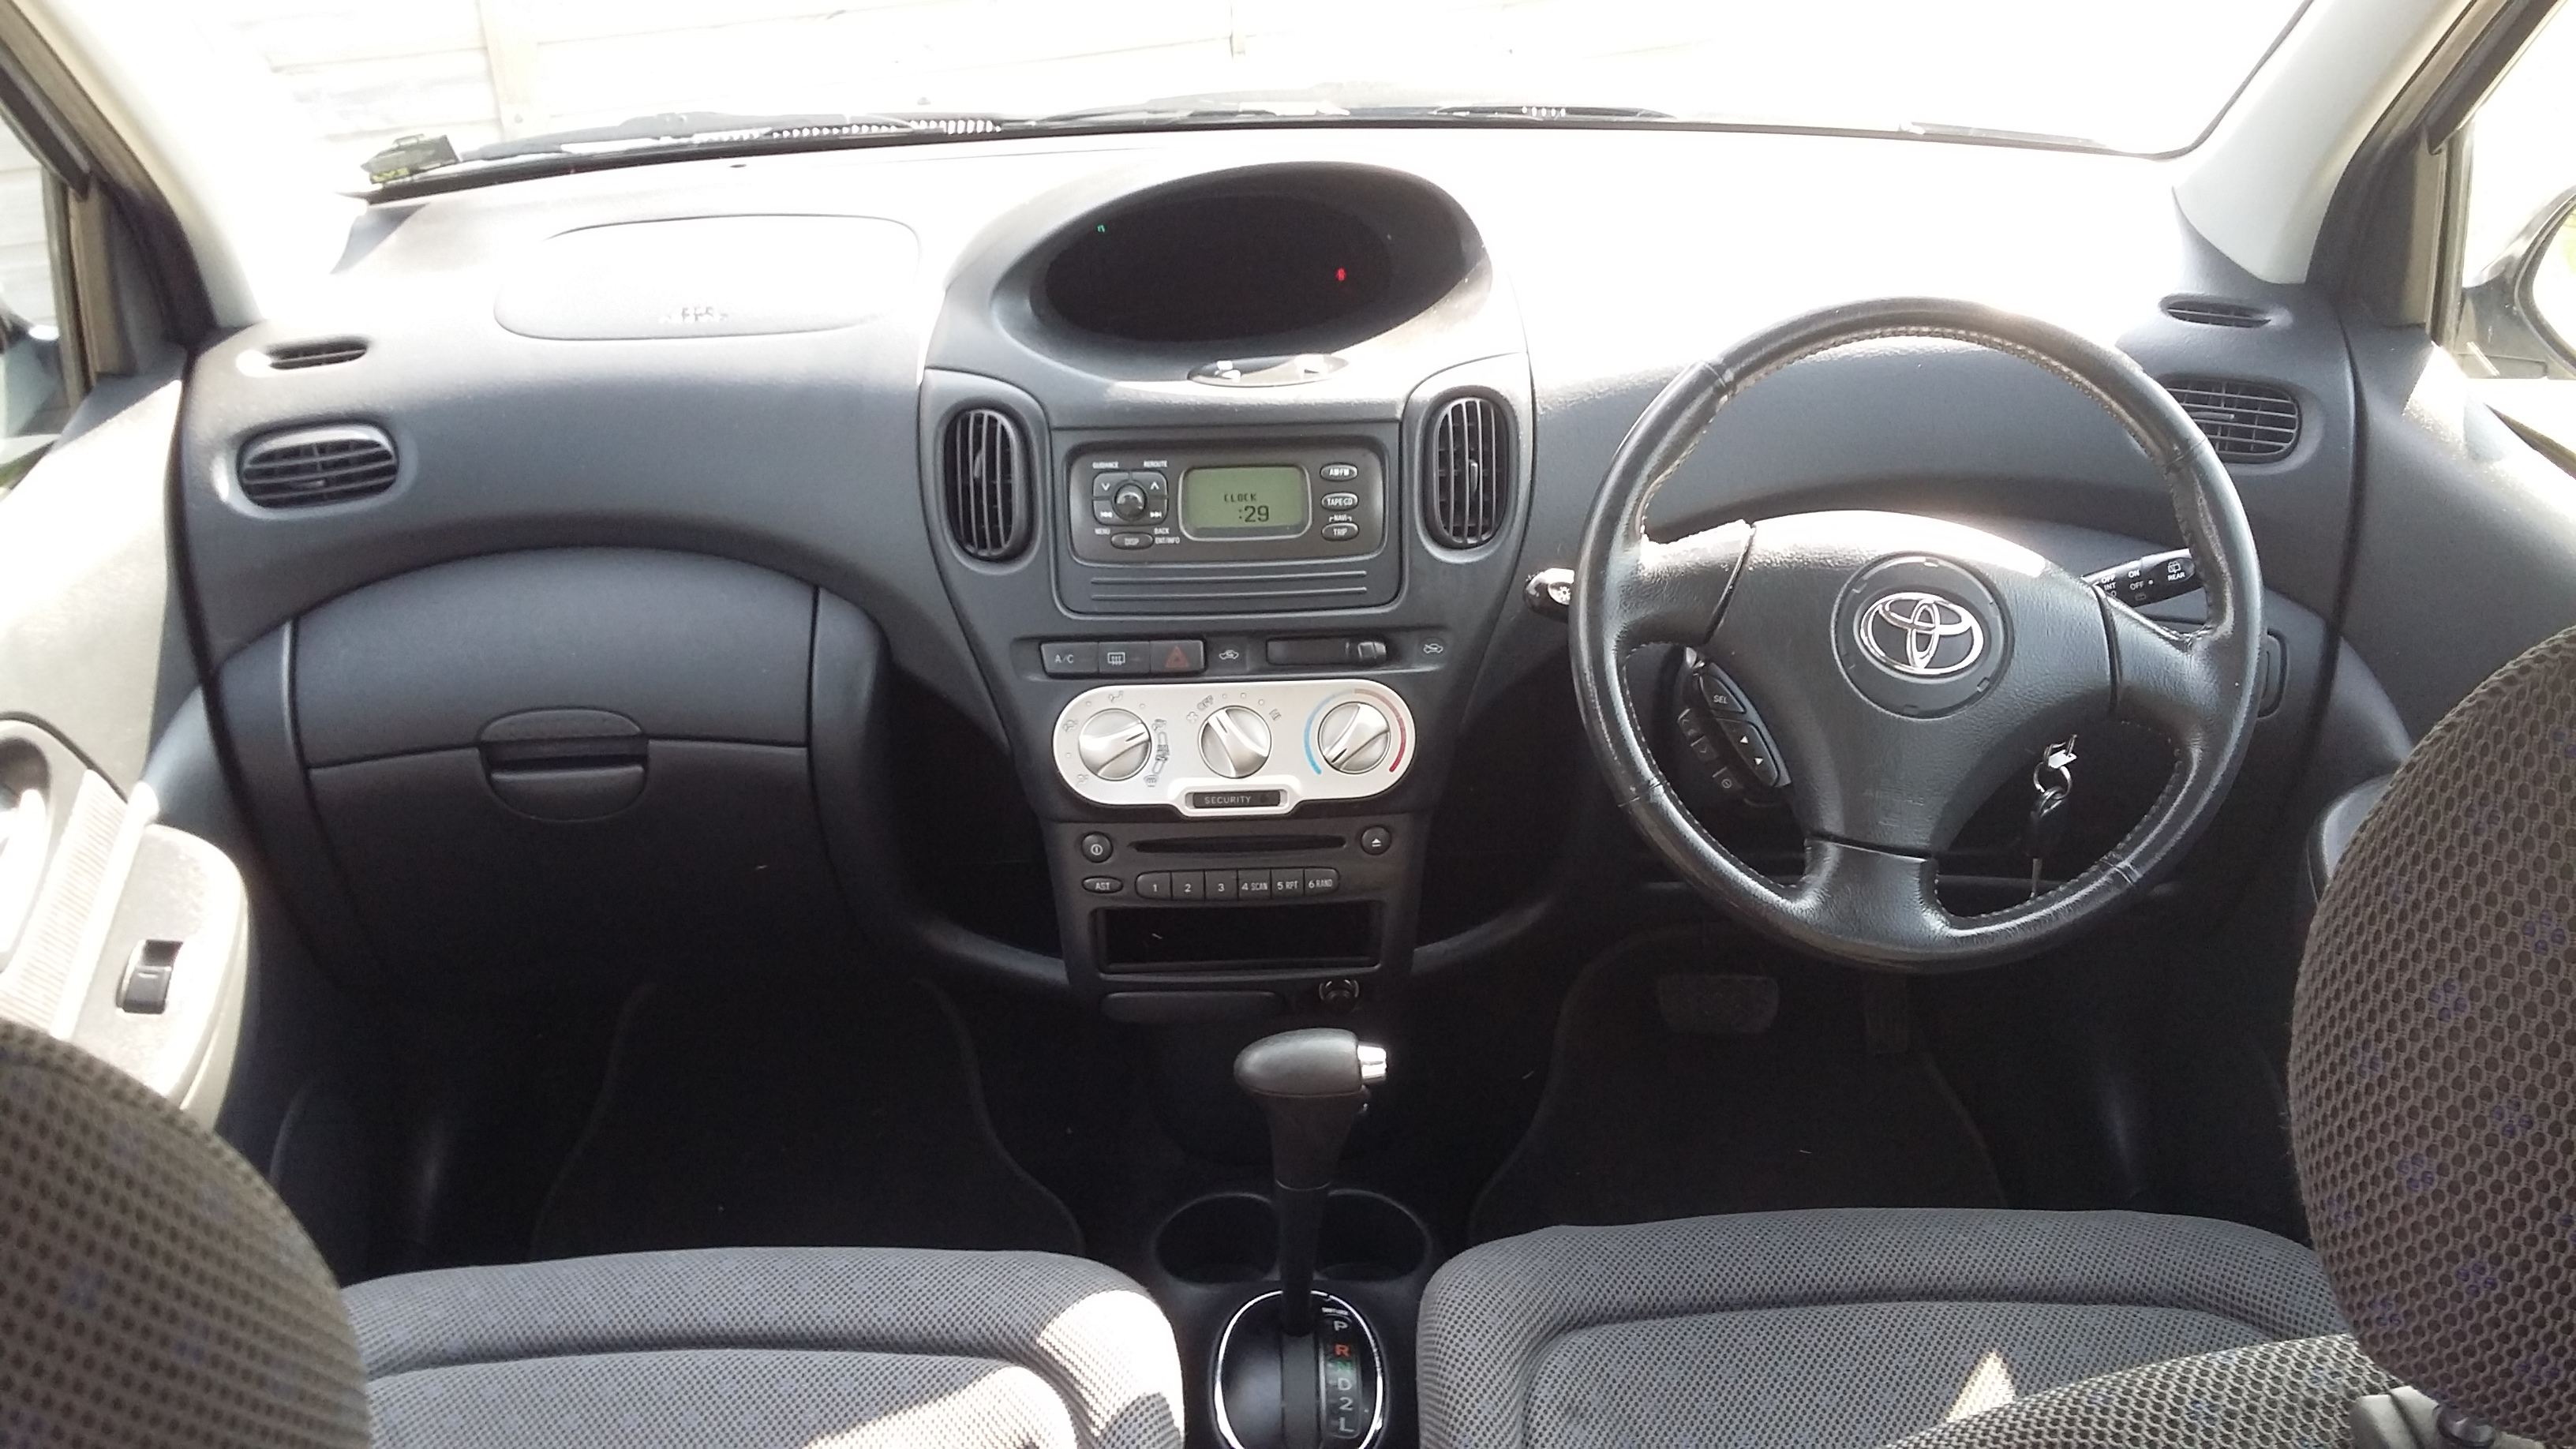 2004 Toyota Yaris Verso For Sale From Woodlands Cars (Malton) Interior Cabin